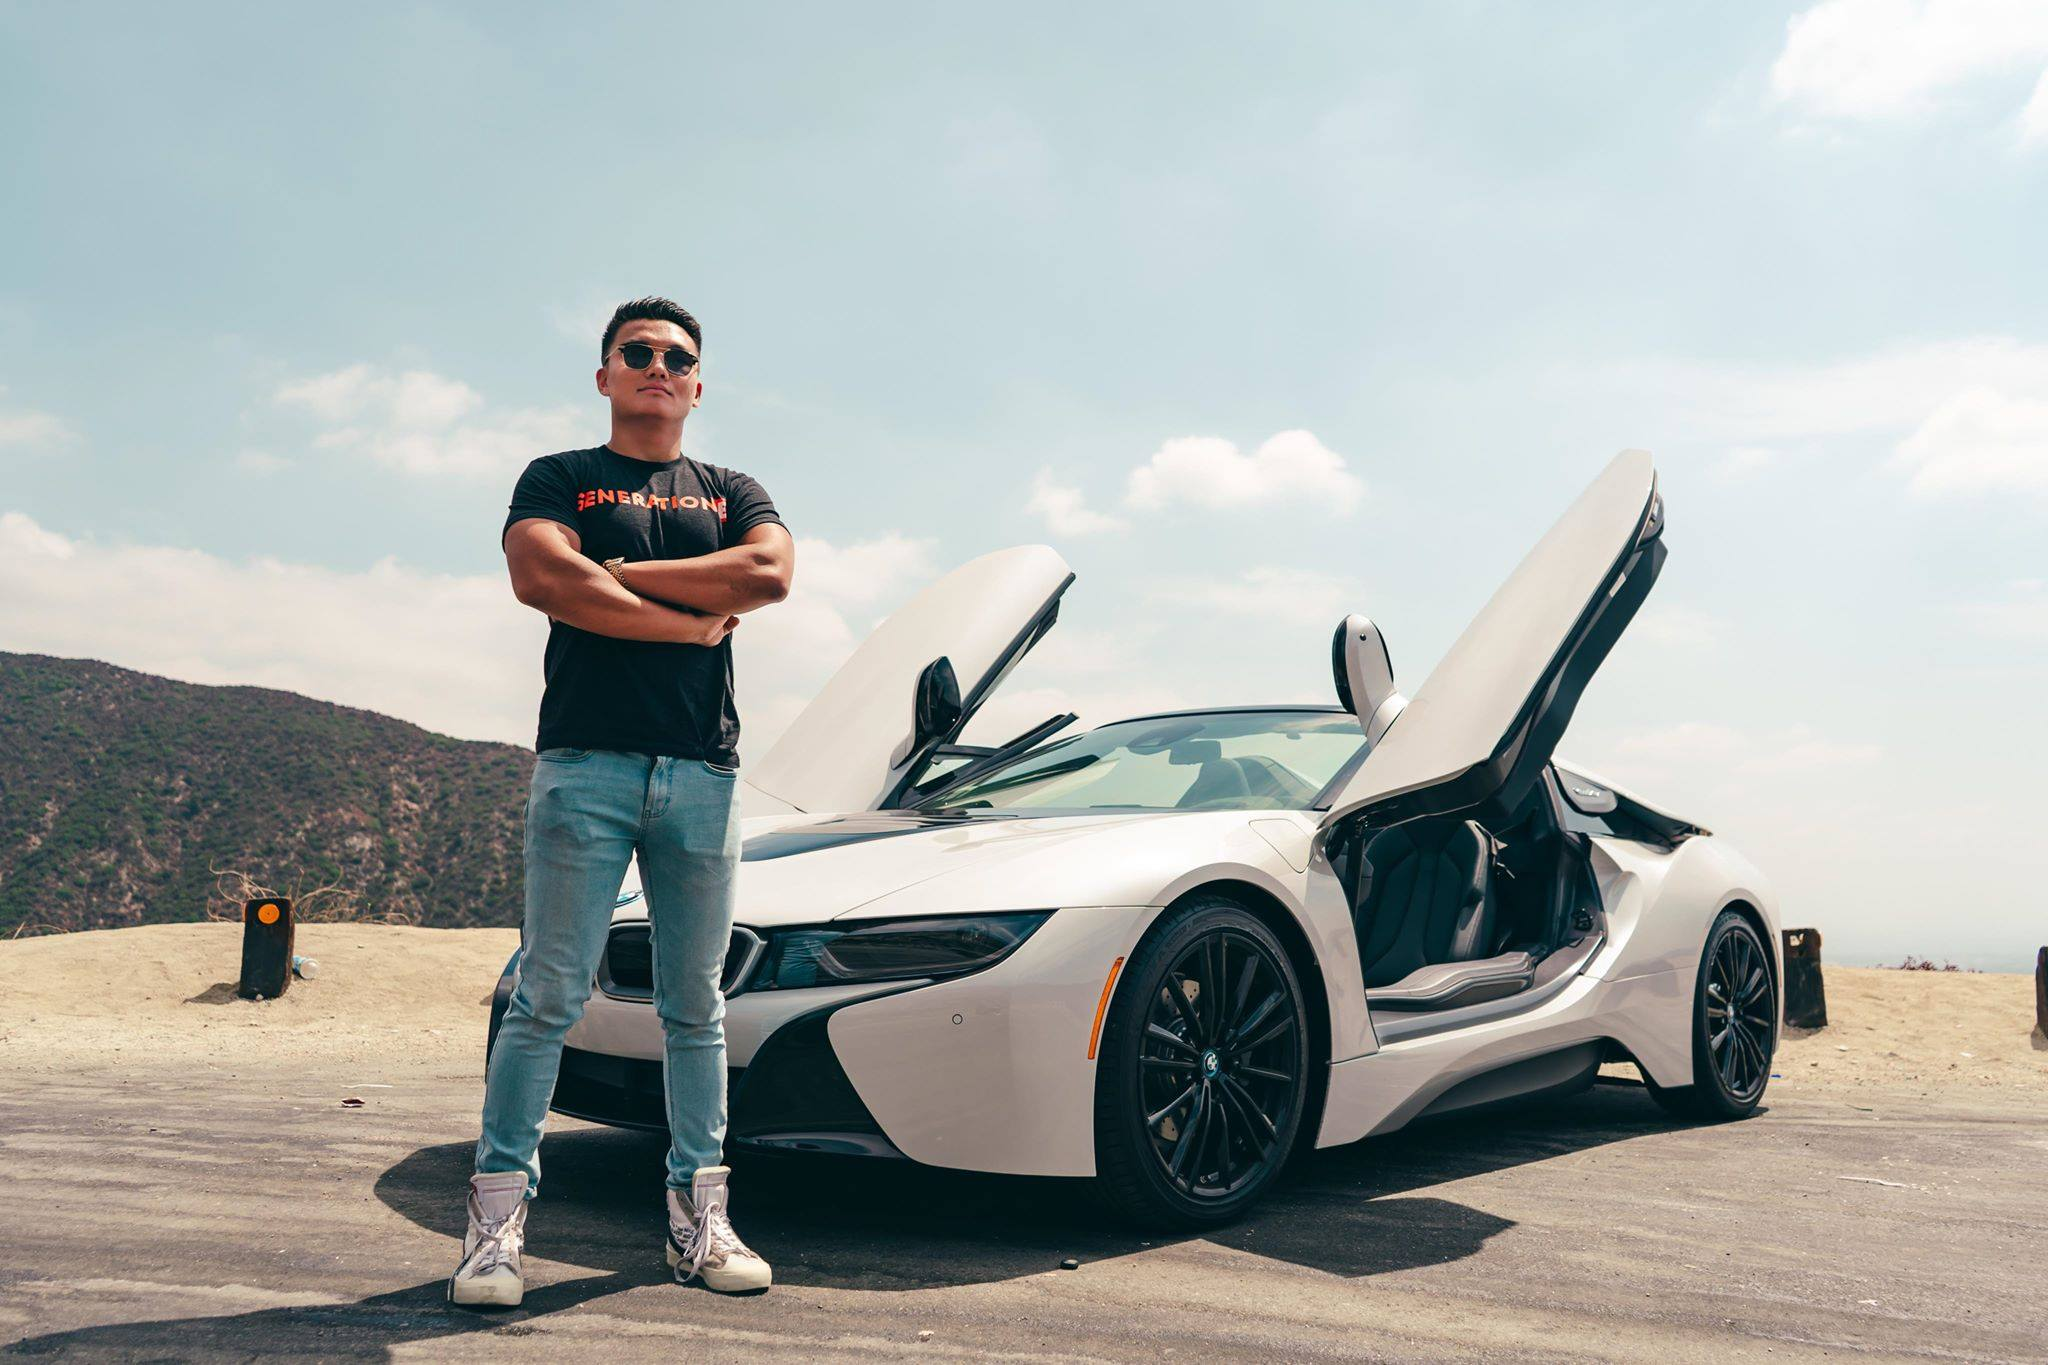 Kevin Zhang with a Lamborghini in Los Angeles